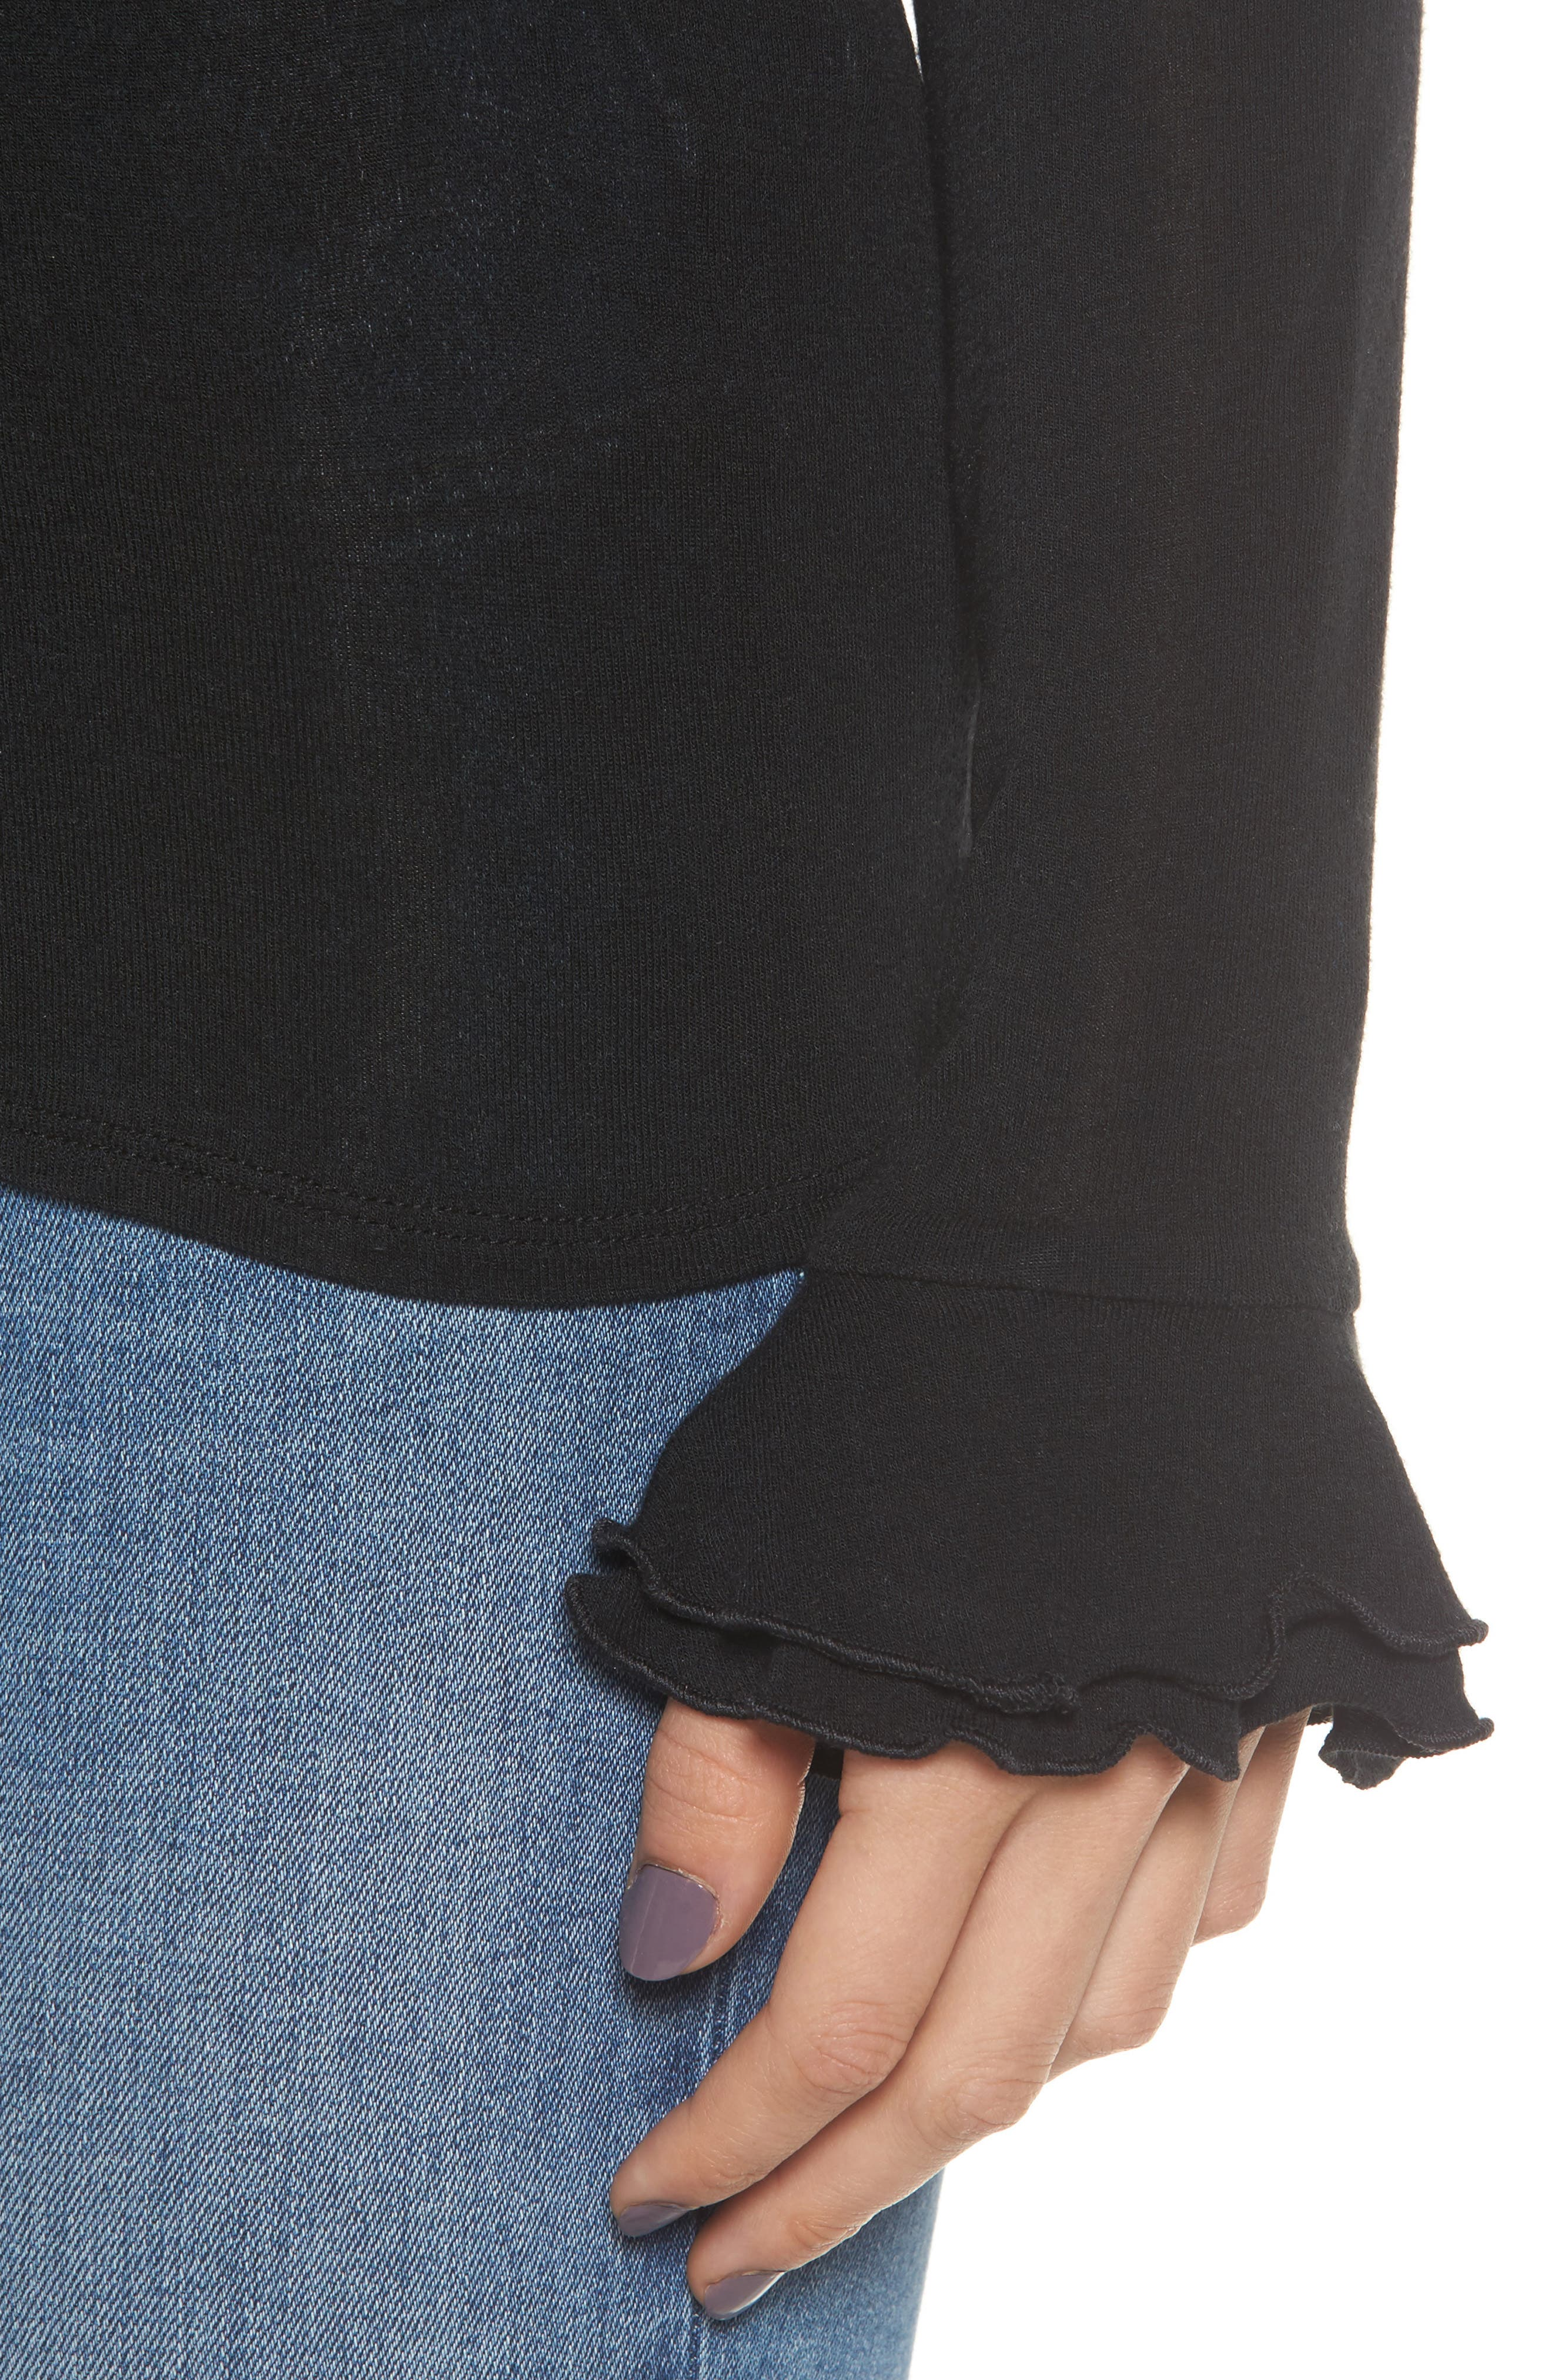 Ruffle Cuff Sleeve Tee,                             Alternate thumbnail 4, color,                             001